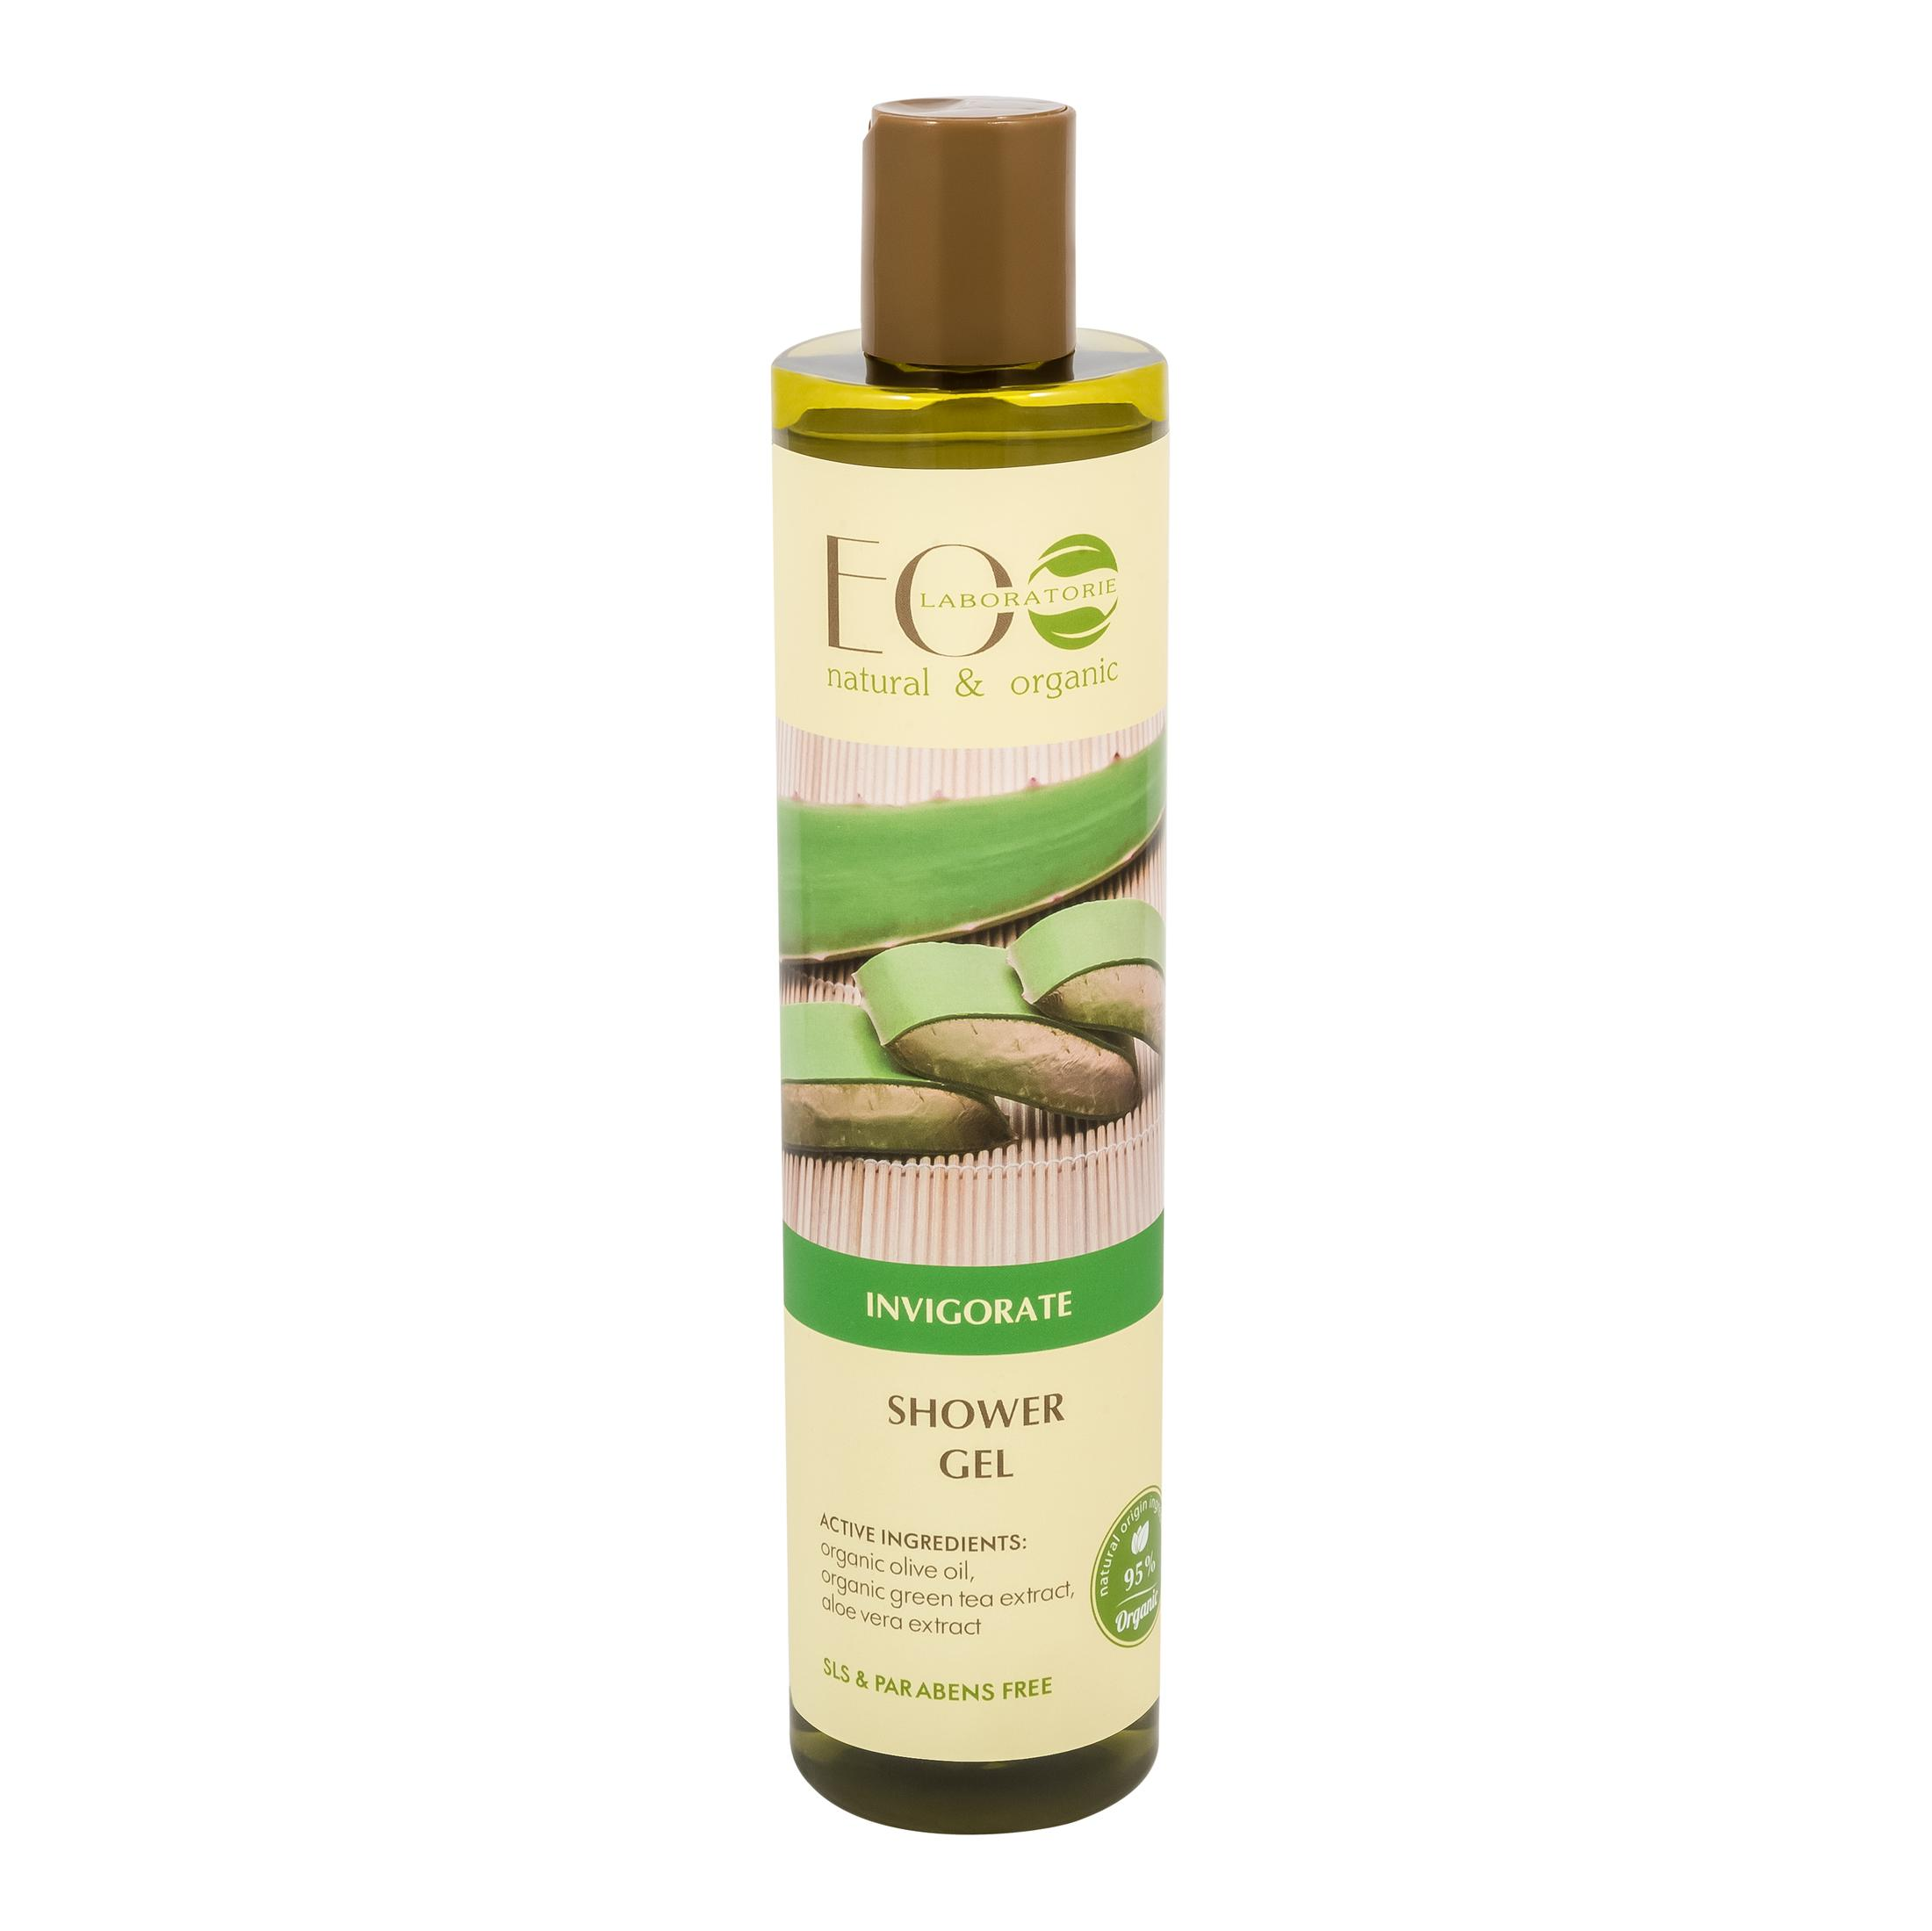 EO Laboratorie Organic shower gel invigorate clean scent safe for children